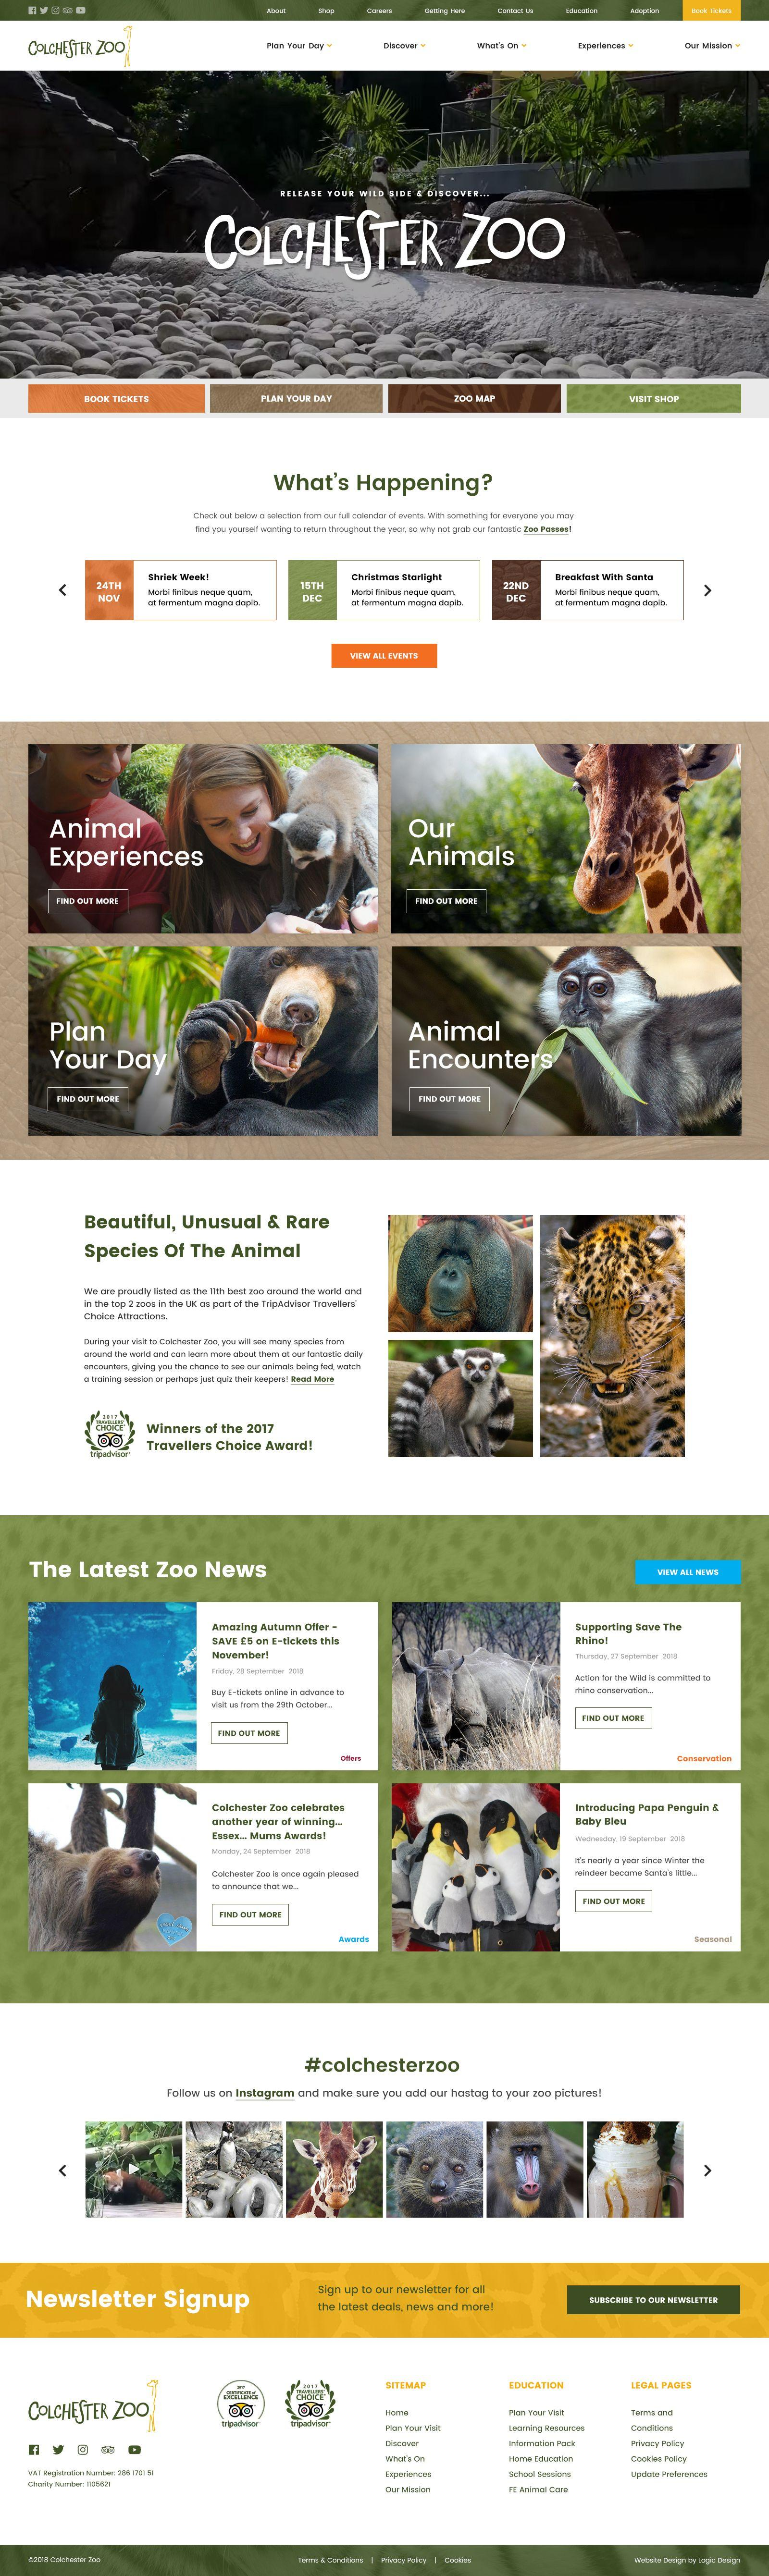 Large WordPress Website for leading UK tourist attraction